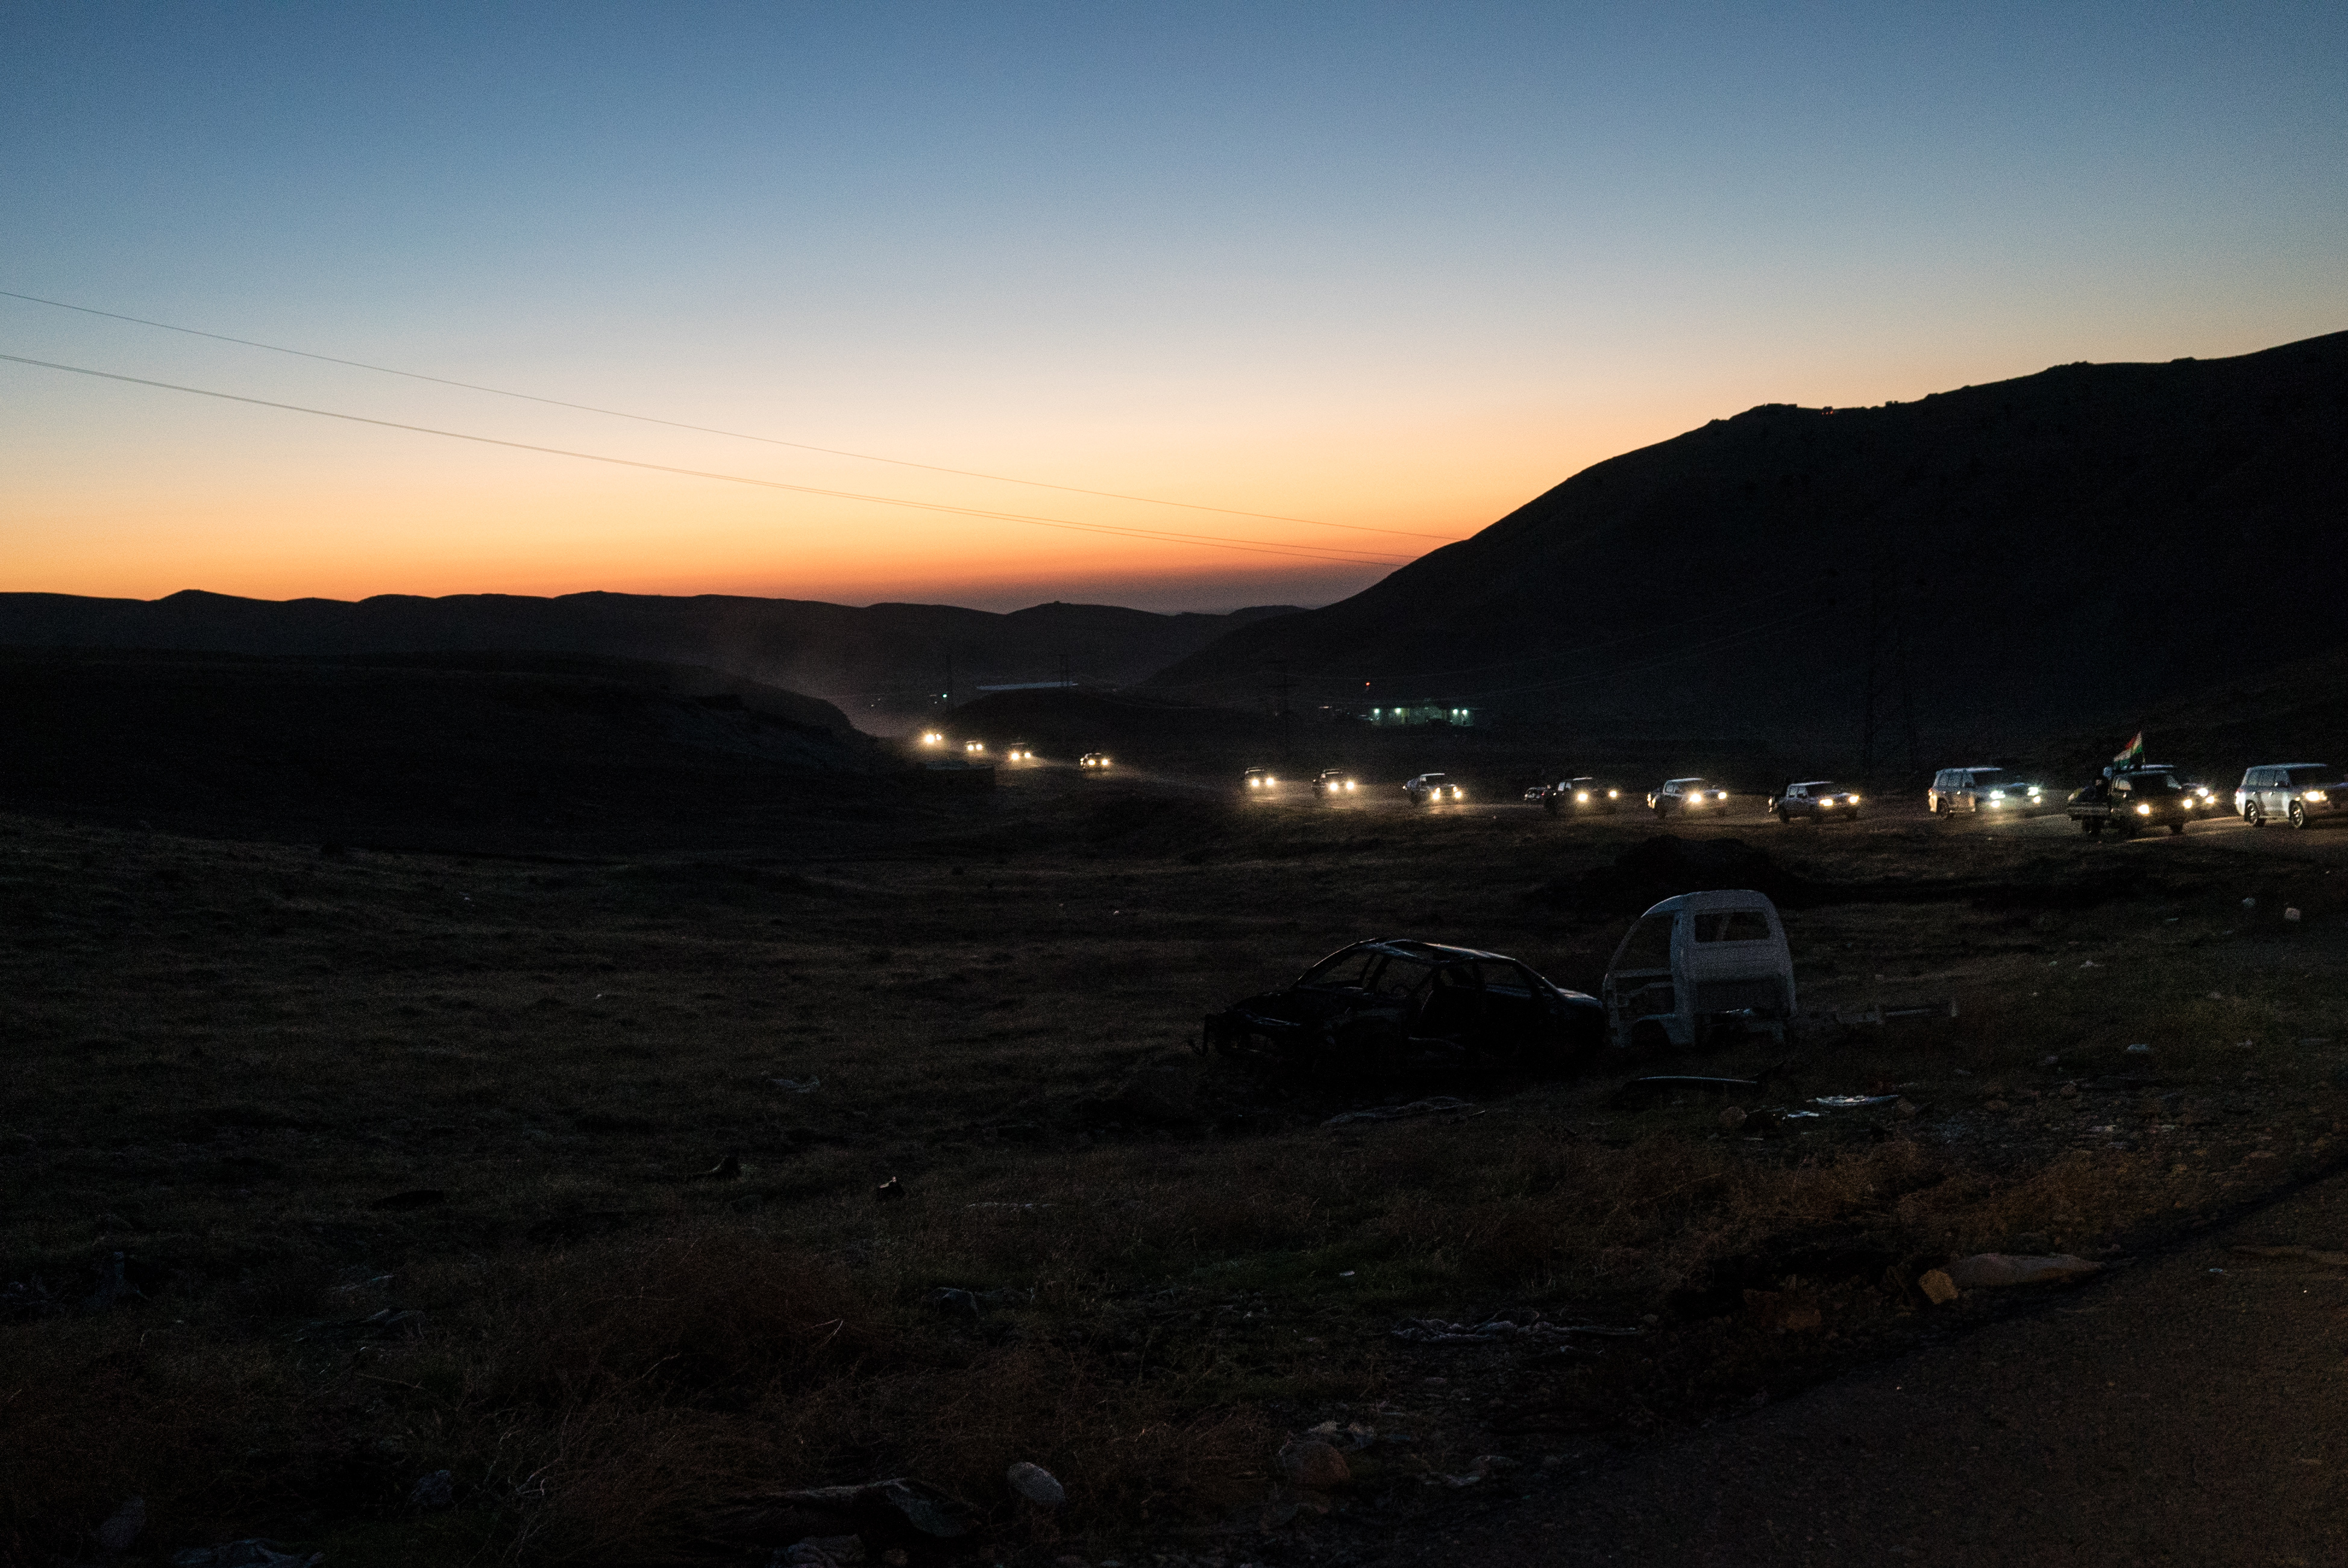 A convoy of Kurdish forces drives to a gathering point before dawn, ahead of a major offensive launched to expel ISIS militants from Sinjar, on Nov 12, 2015.